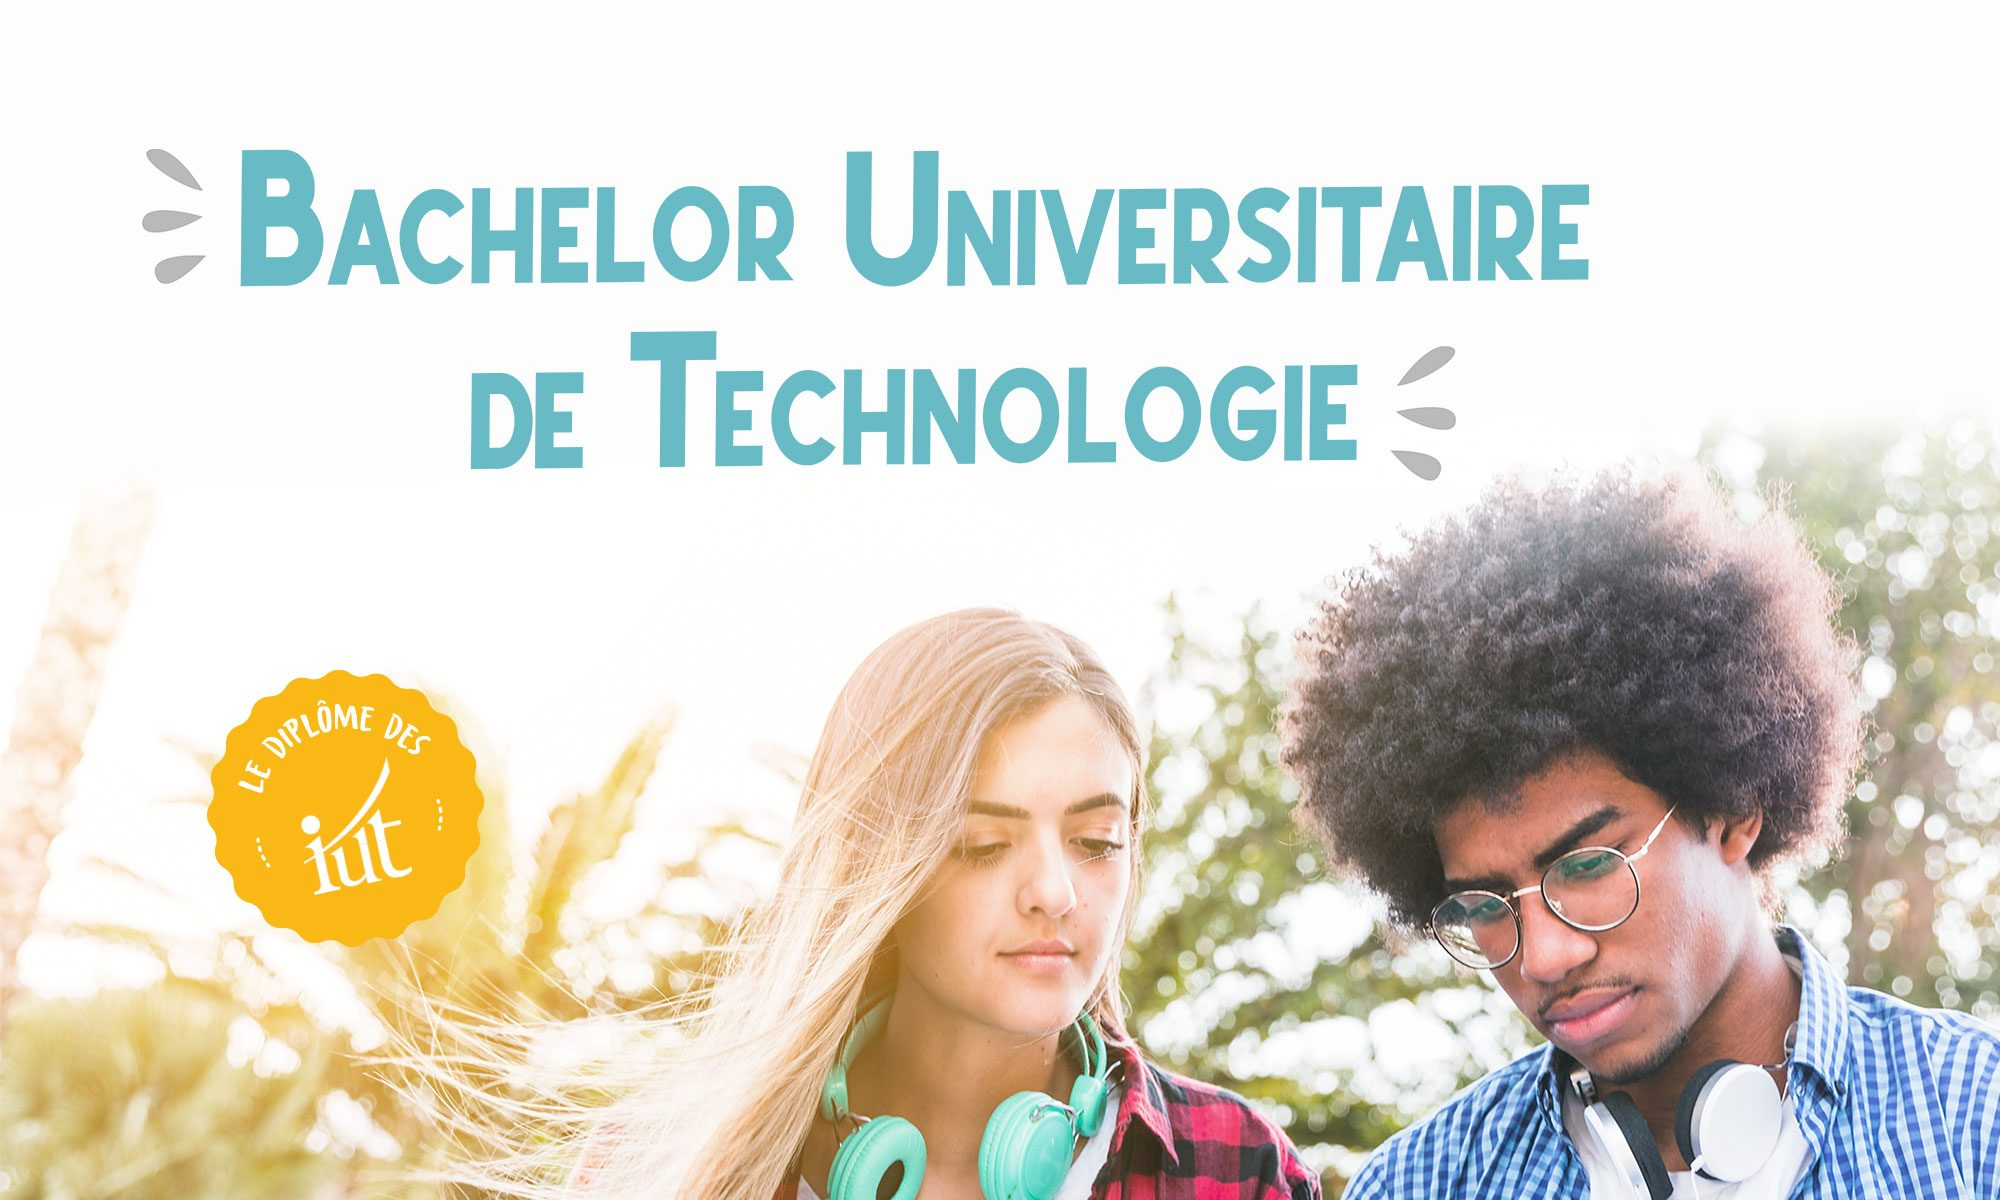 Le Bachelor universitaire de technologie